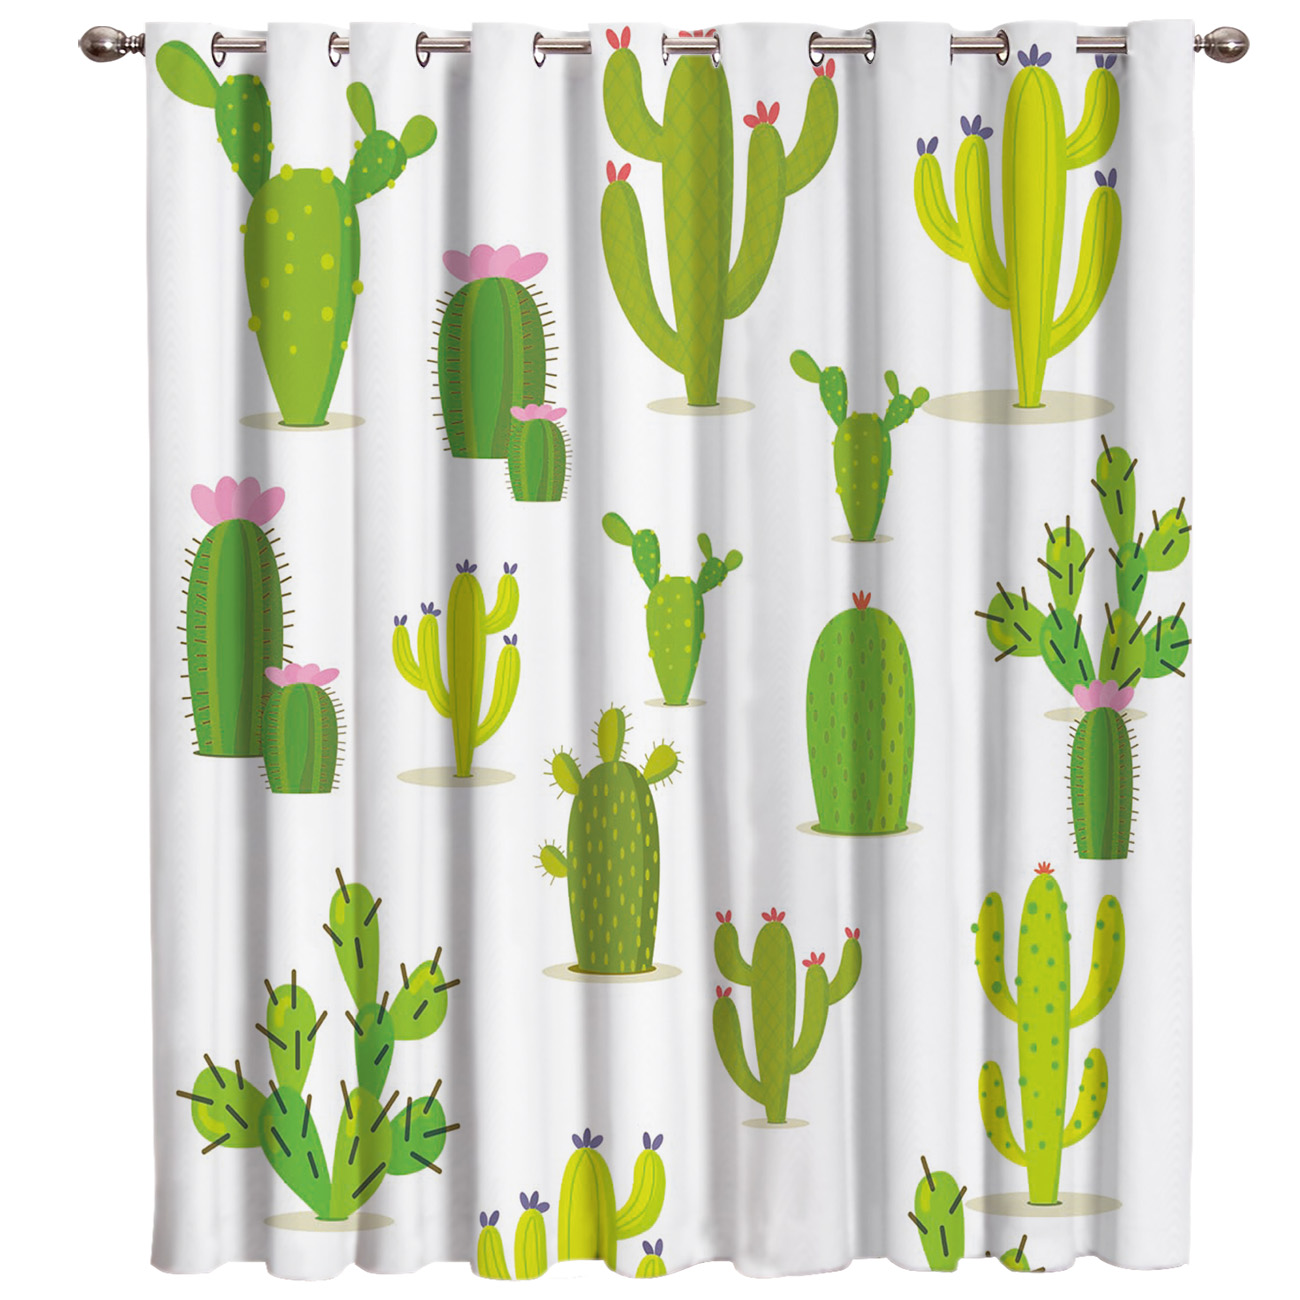 Cartoon Cactus Flowering Room Curtains Large Window Blackout Bathroom Outdoor Bedroom Indoor Decor Kids Curtain Panels